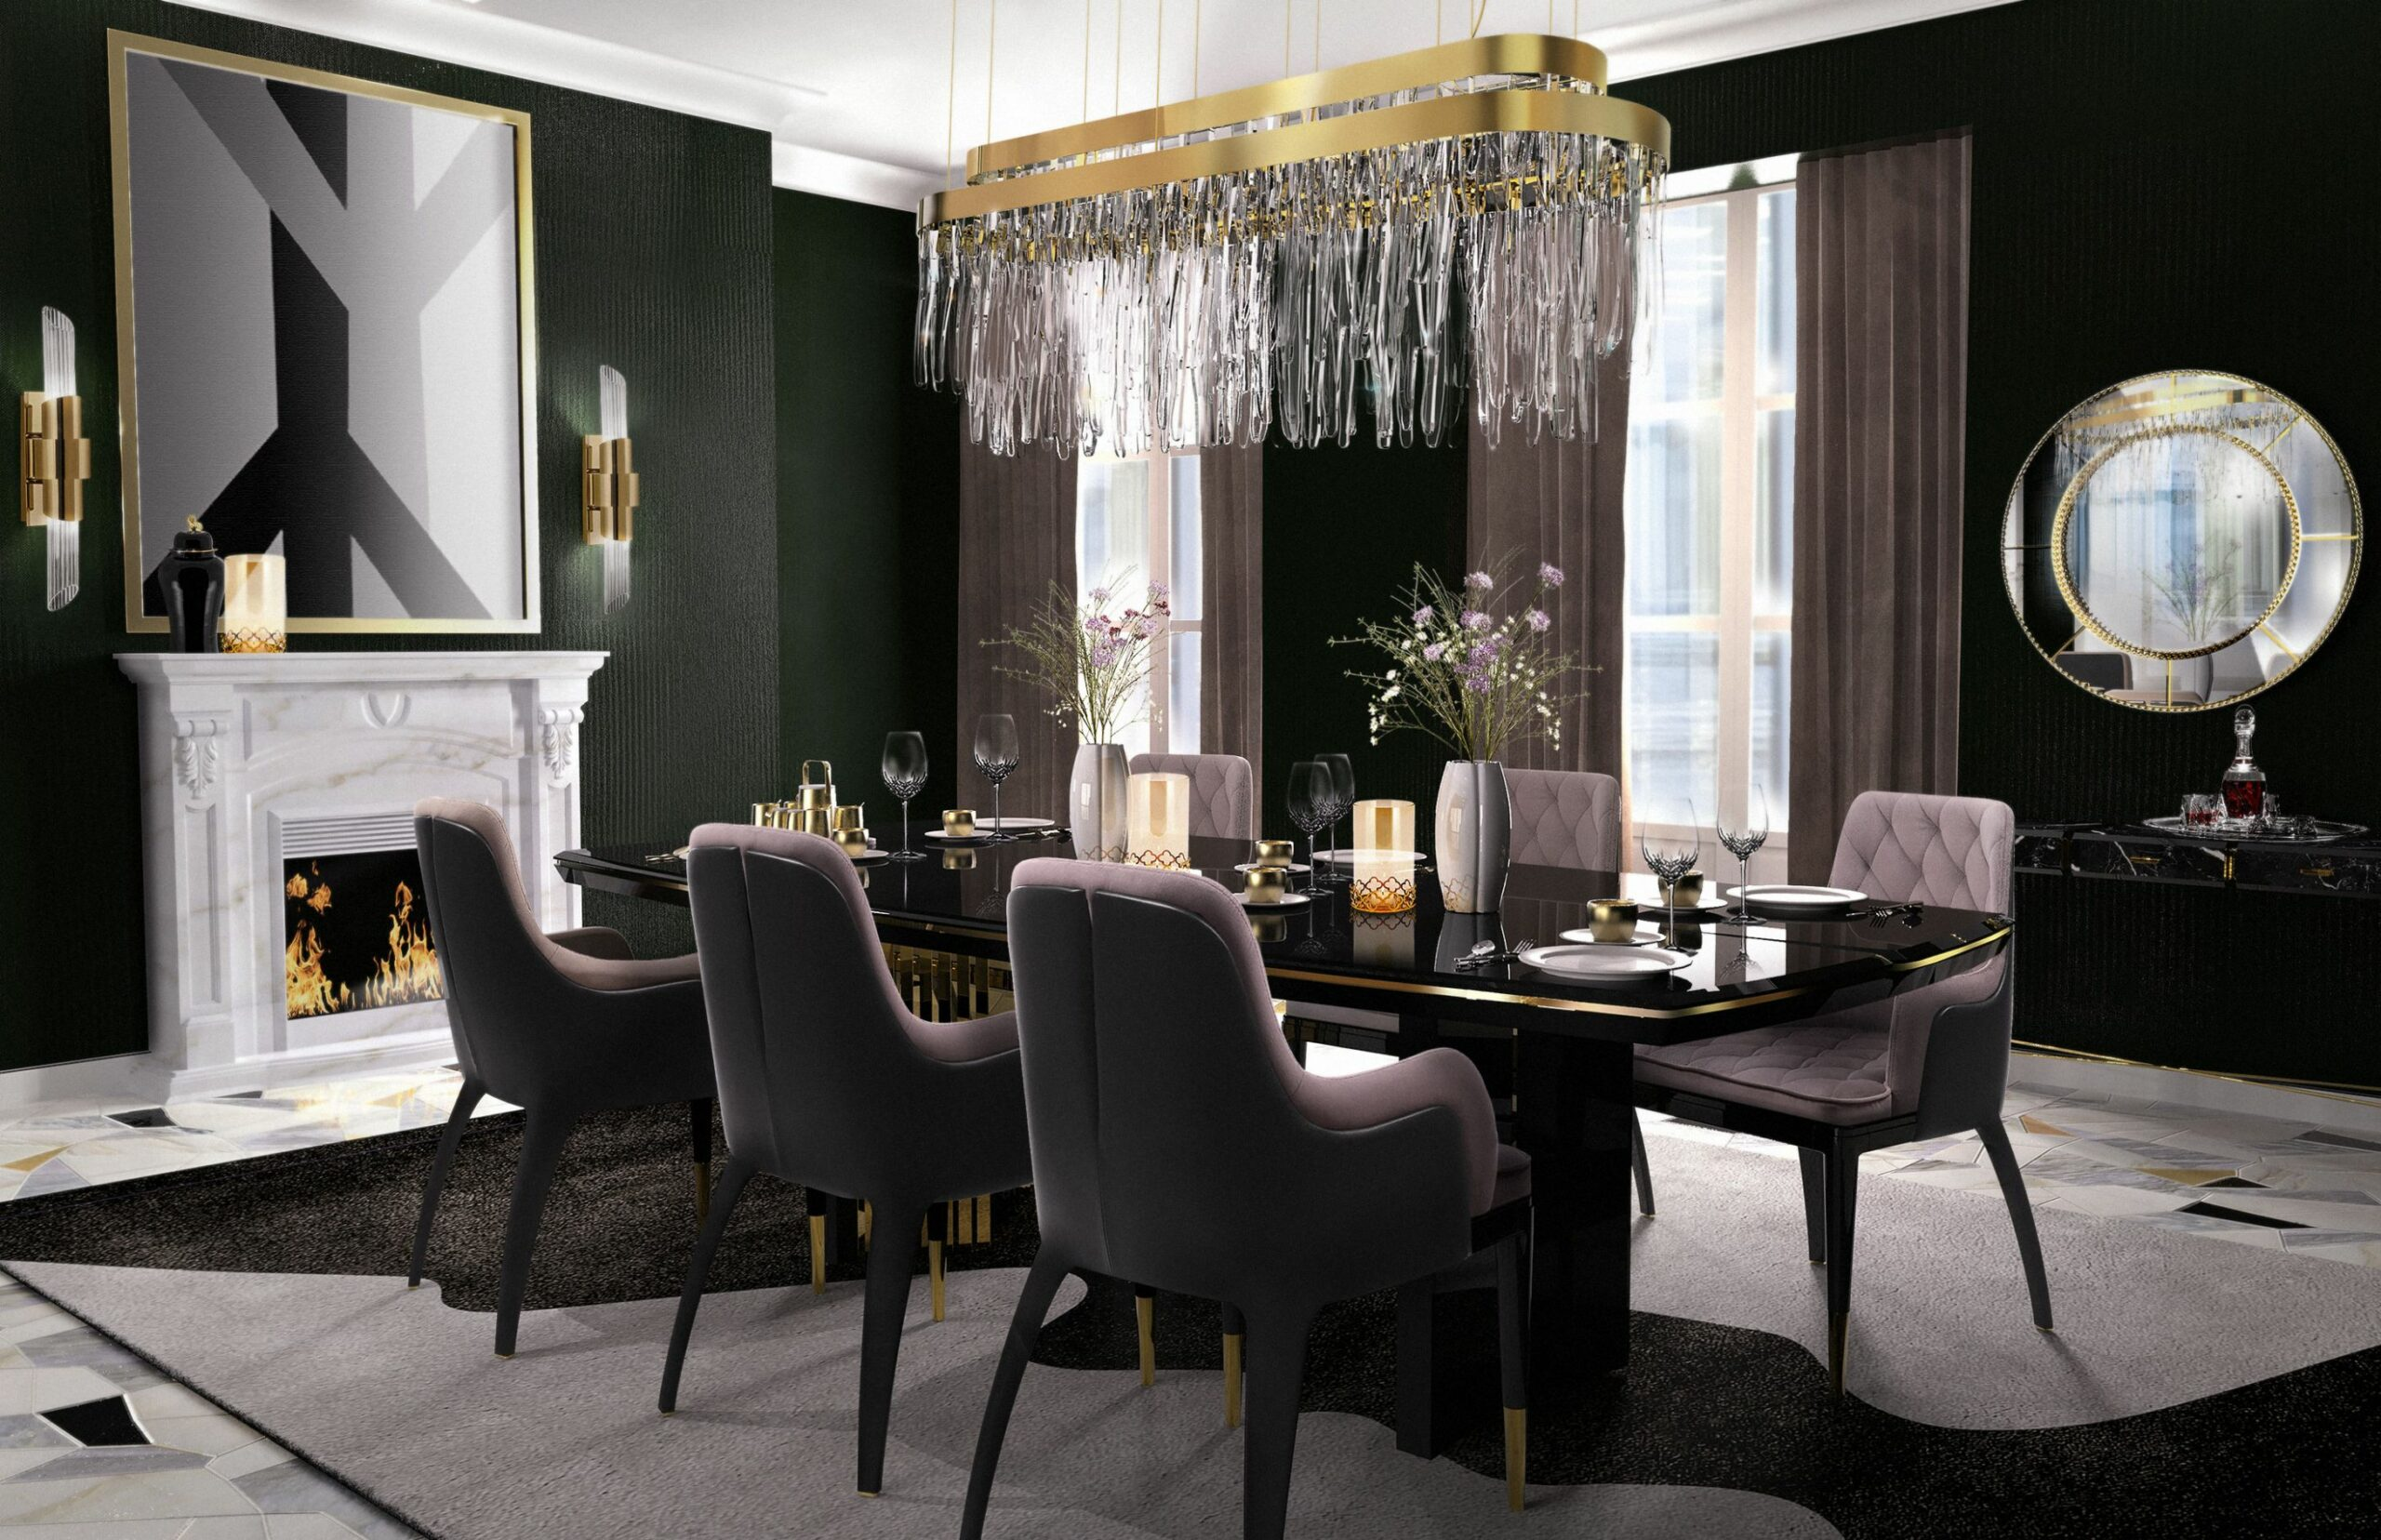 Elegant Dining Room Ideas You Have To Use this Fall - dining room decor ideas 2018